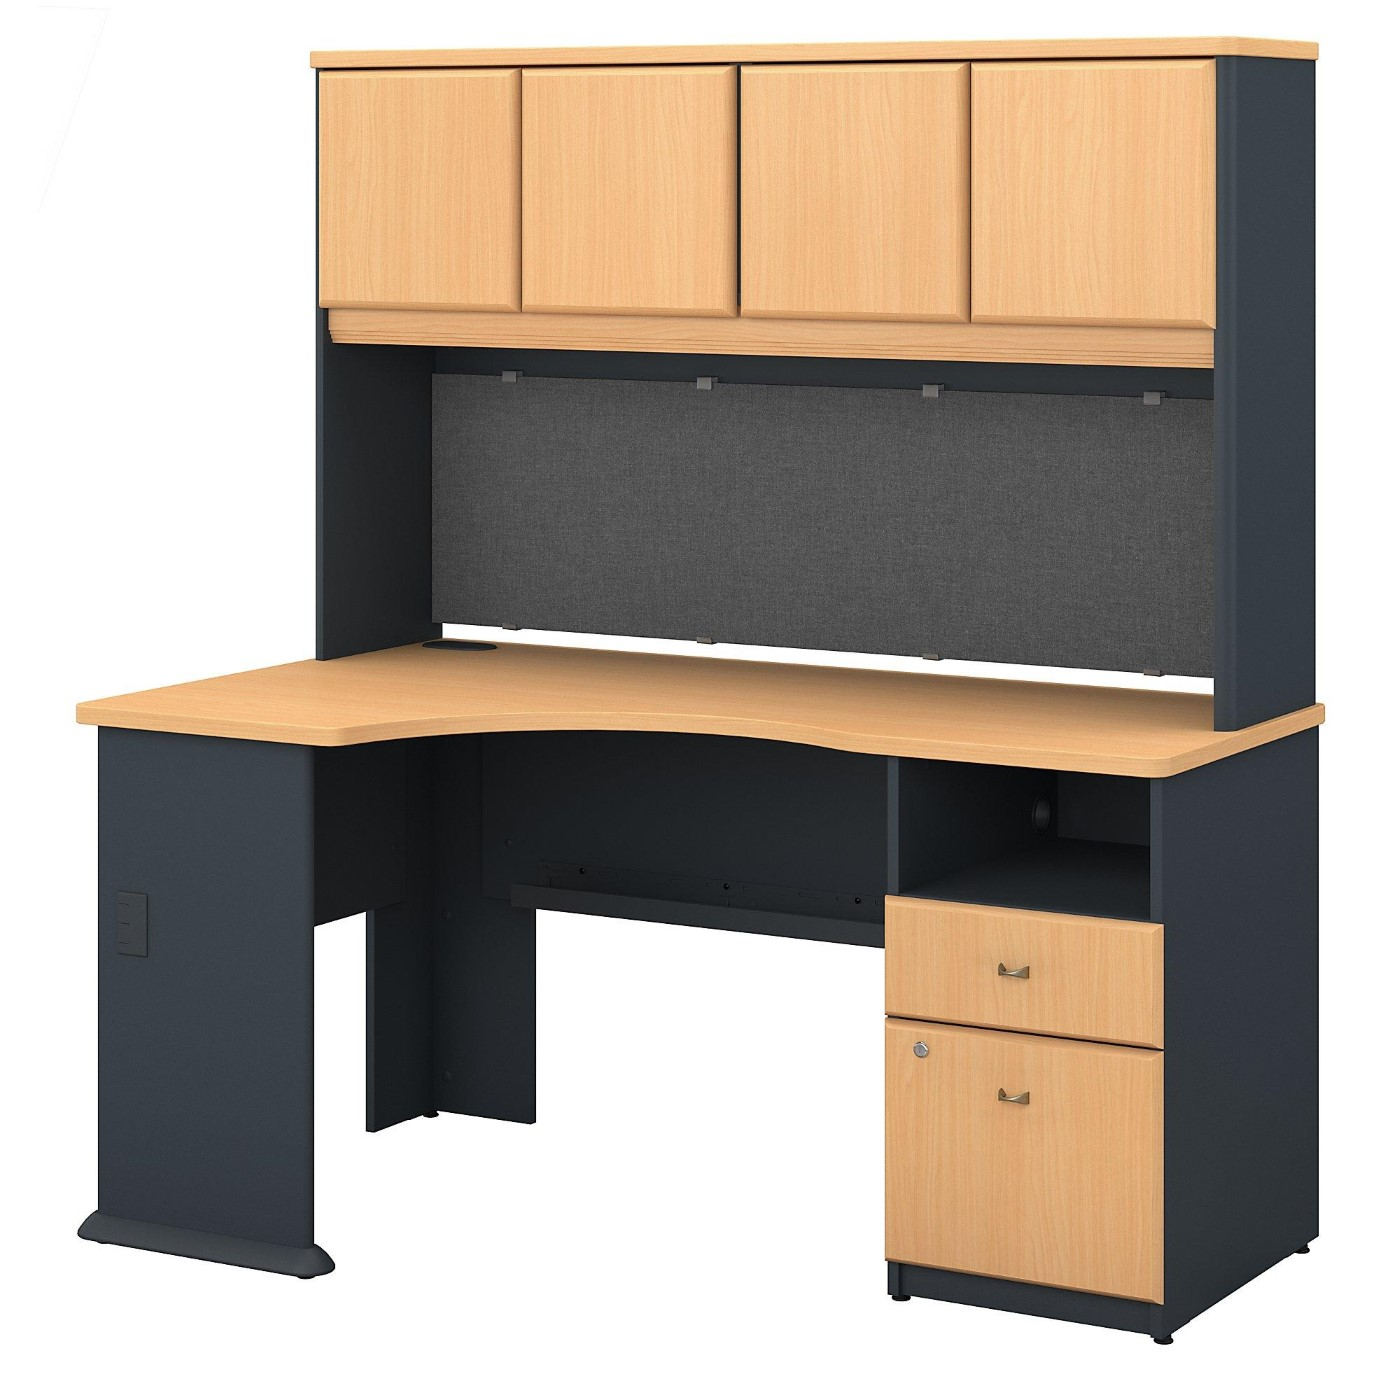 <font color=#c60><b>BUSH BUSINESS FURNITURE SERIES A 60W CORNER DESK WITH HUTCH AND 2 DRAWER PEDESTAL #EH-SRA007BE. FREE SHIPPING</font></b></font></b>